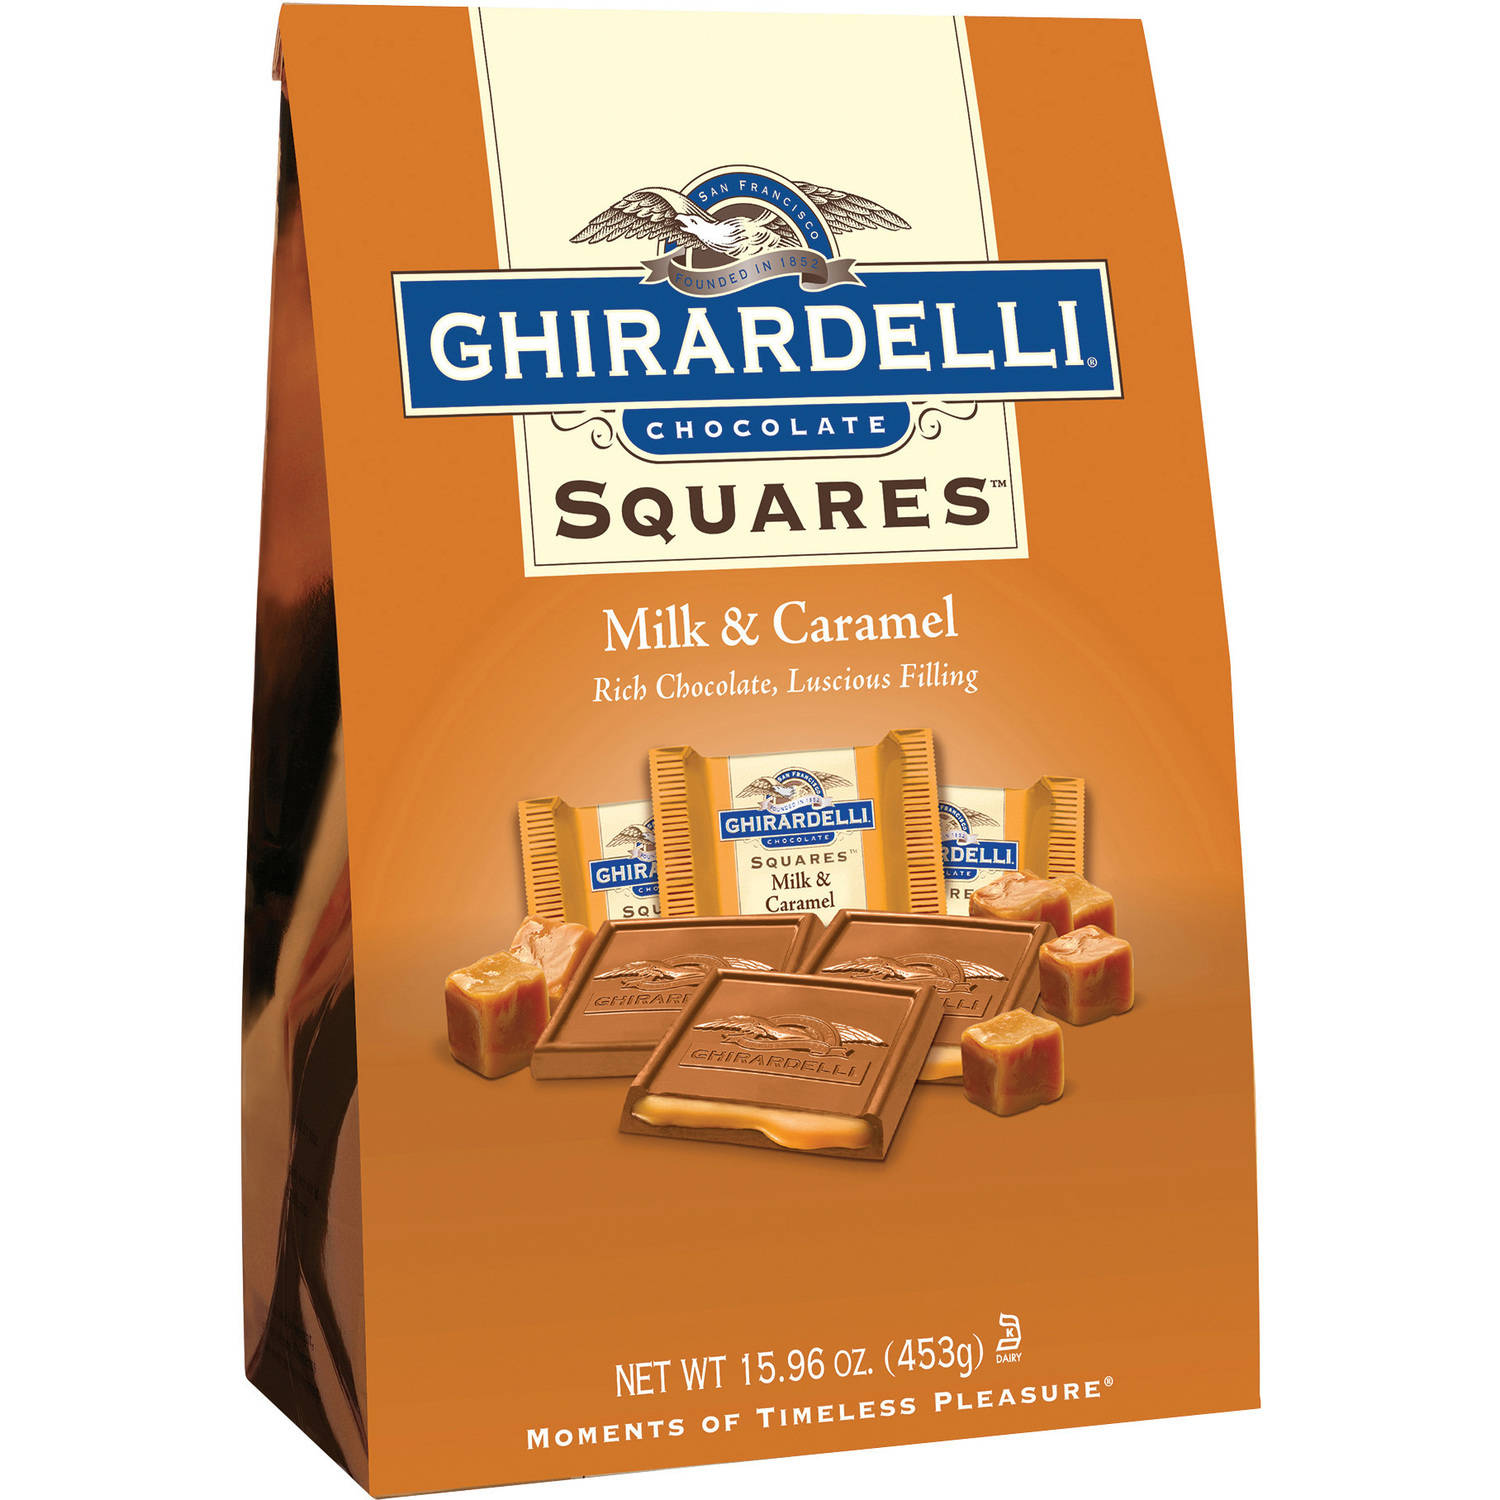 Ghirardelli Squares Milk Chocolate & Caramel, 15.9 oz by Ghirardelli Chocolate Company